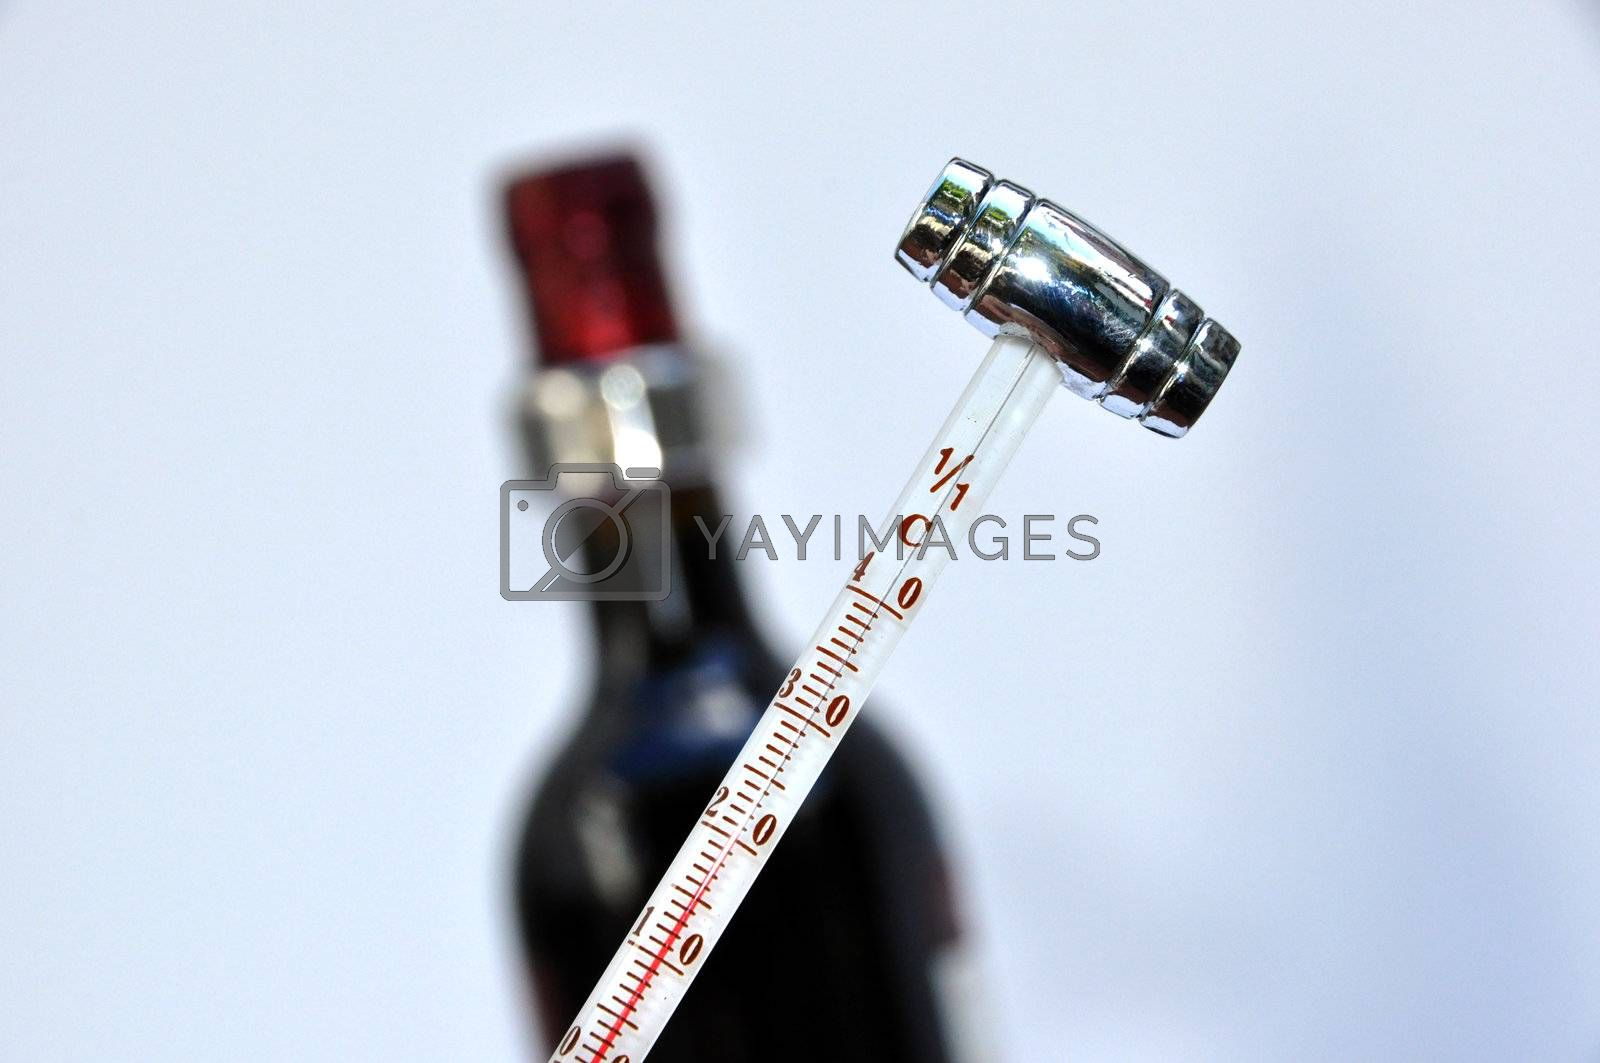 Royalty free image of Wine beverage apparatus by afonsoasneves